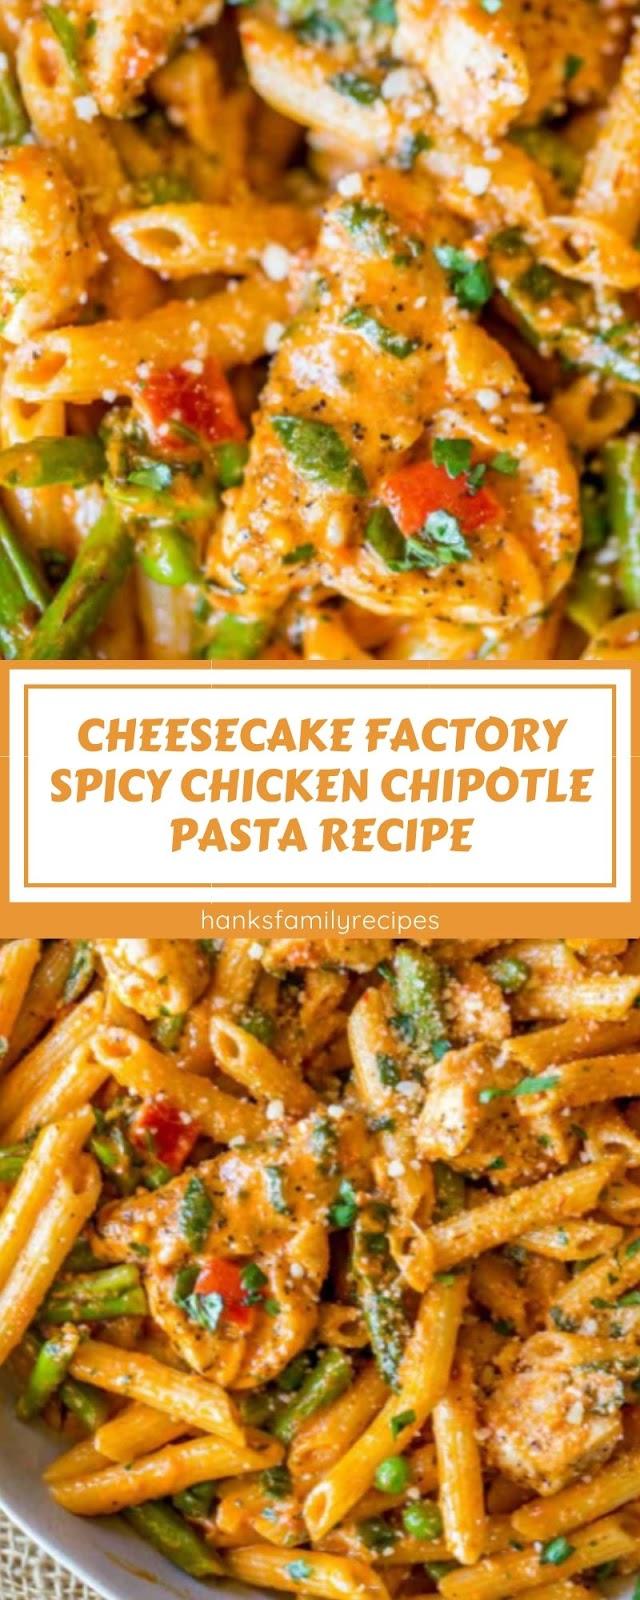 CHEESECAKE FACTORY SPICY CHICKEN CHIPOTLE PASTA RECIPE